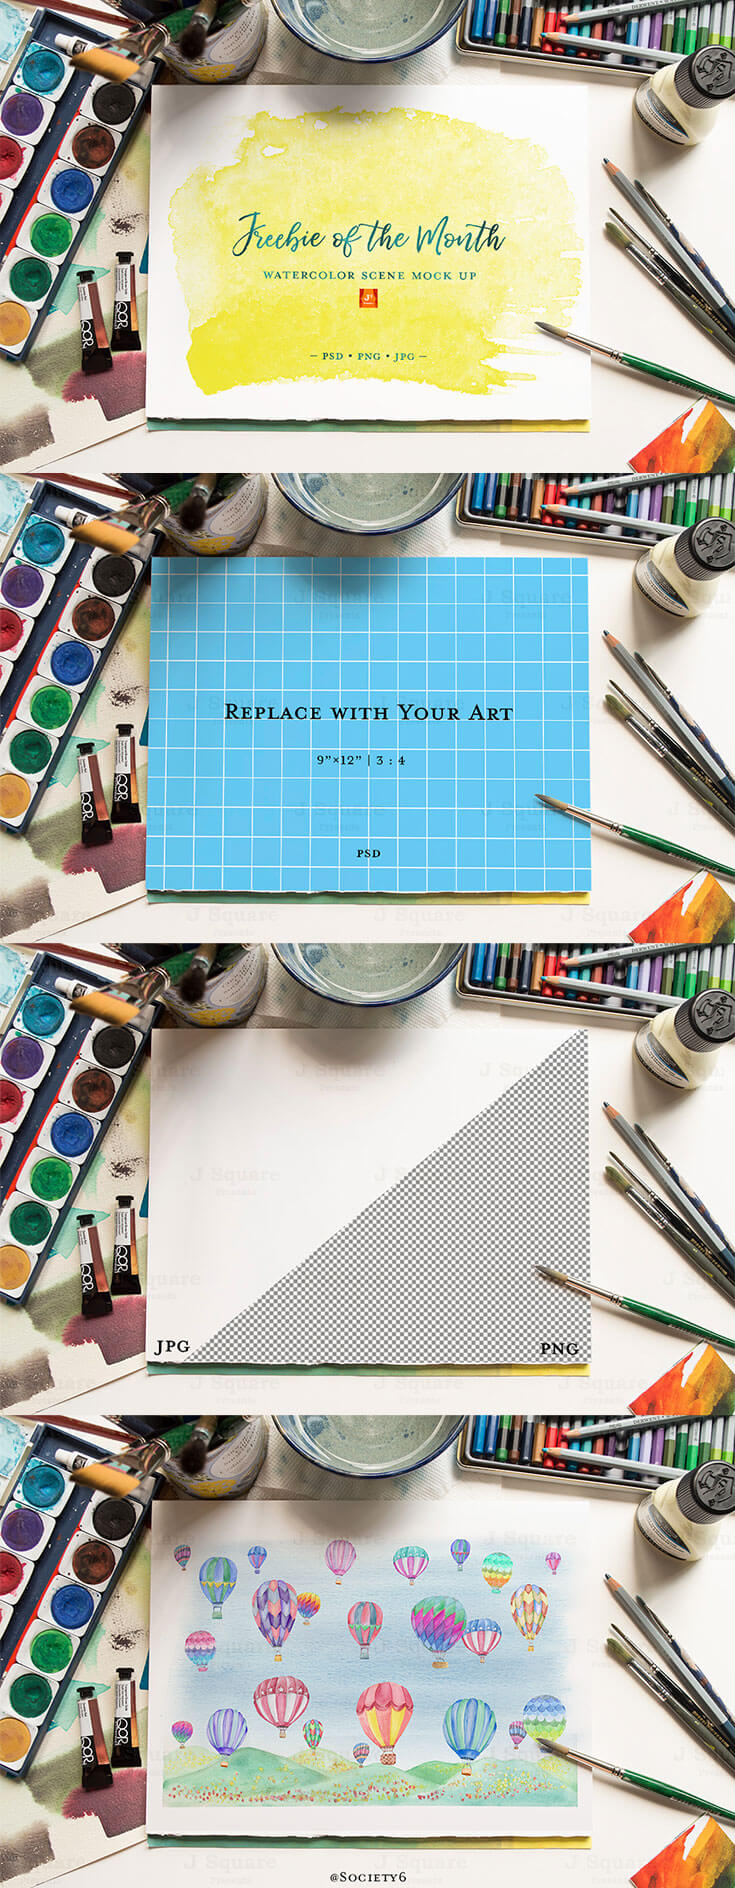 Free #Watercolor #Scene #Mockup is coming from Shu Huang. It comes with PSD file format with built-in smart object for easier use. It is really easy to change the background to any color or texture, move or rotate objects. You can use this mockup template to showcase your designs, lettering, arts, sketches, fonts, e-stores, show your work, blog, web or print.